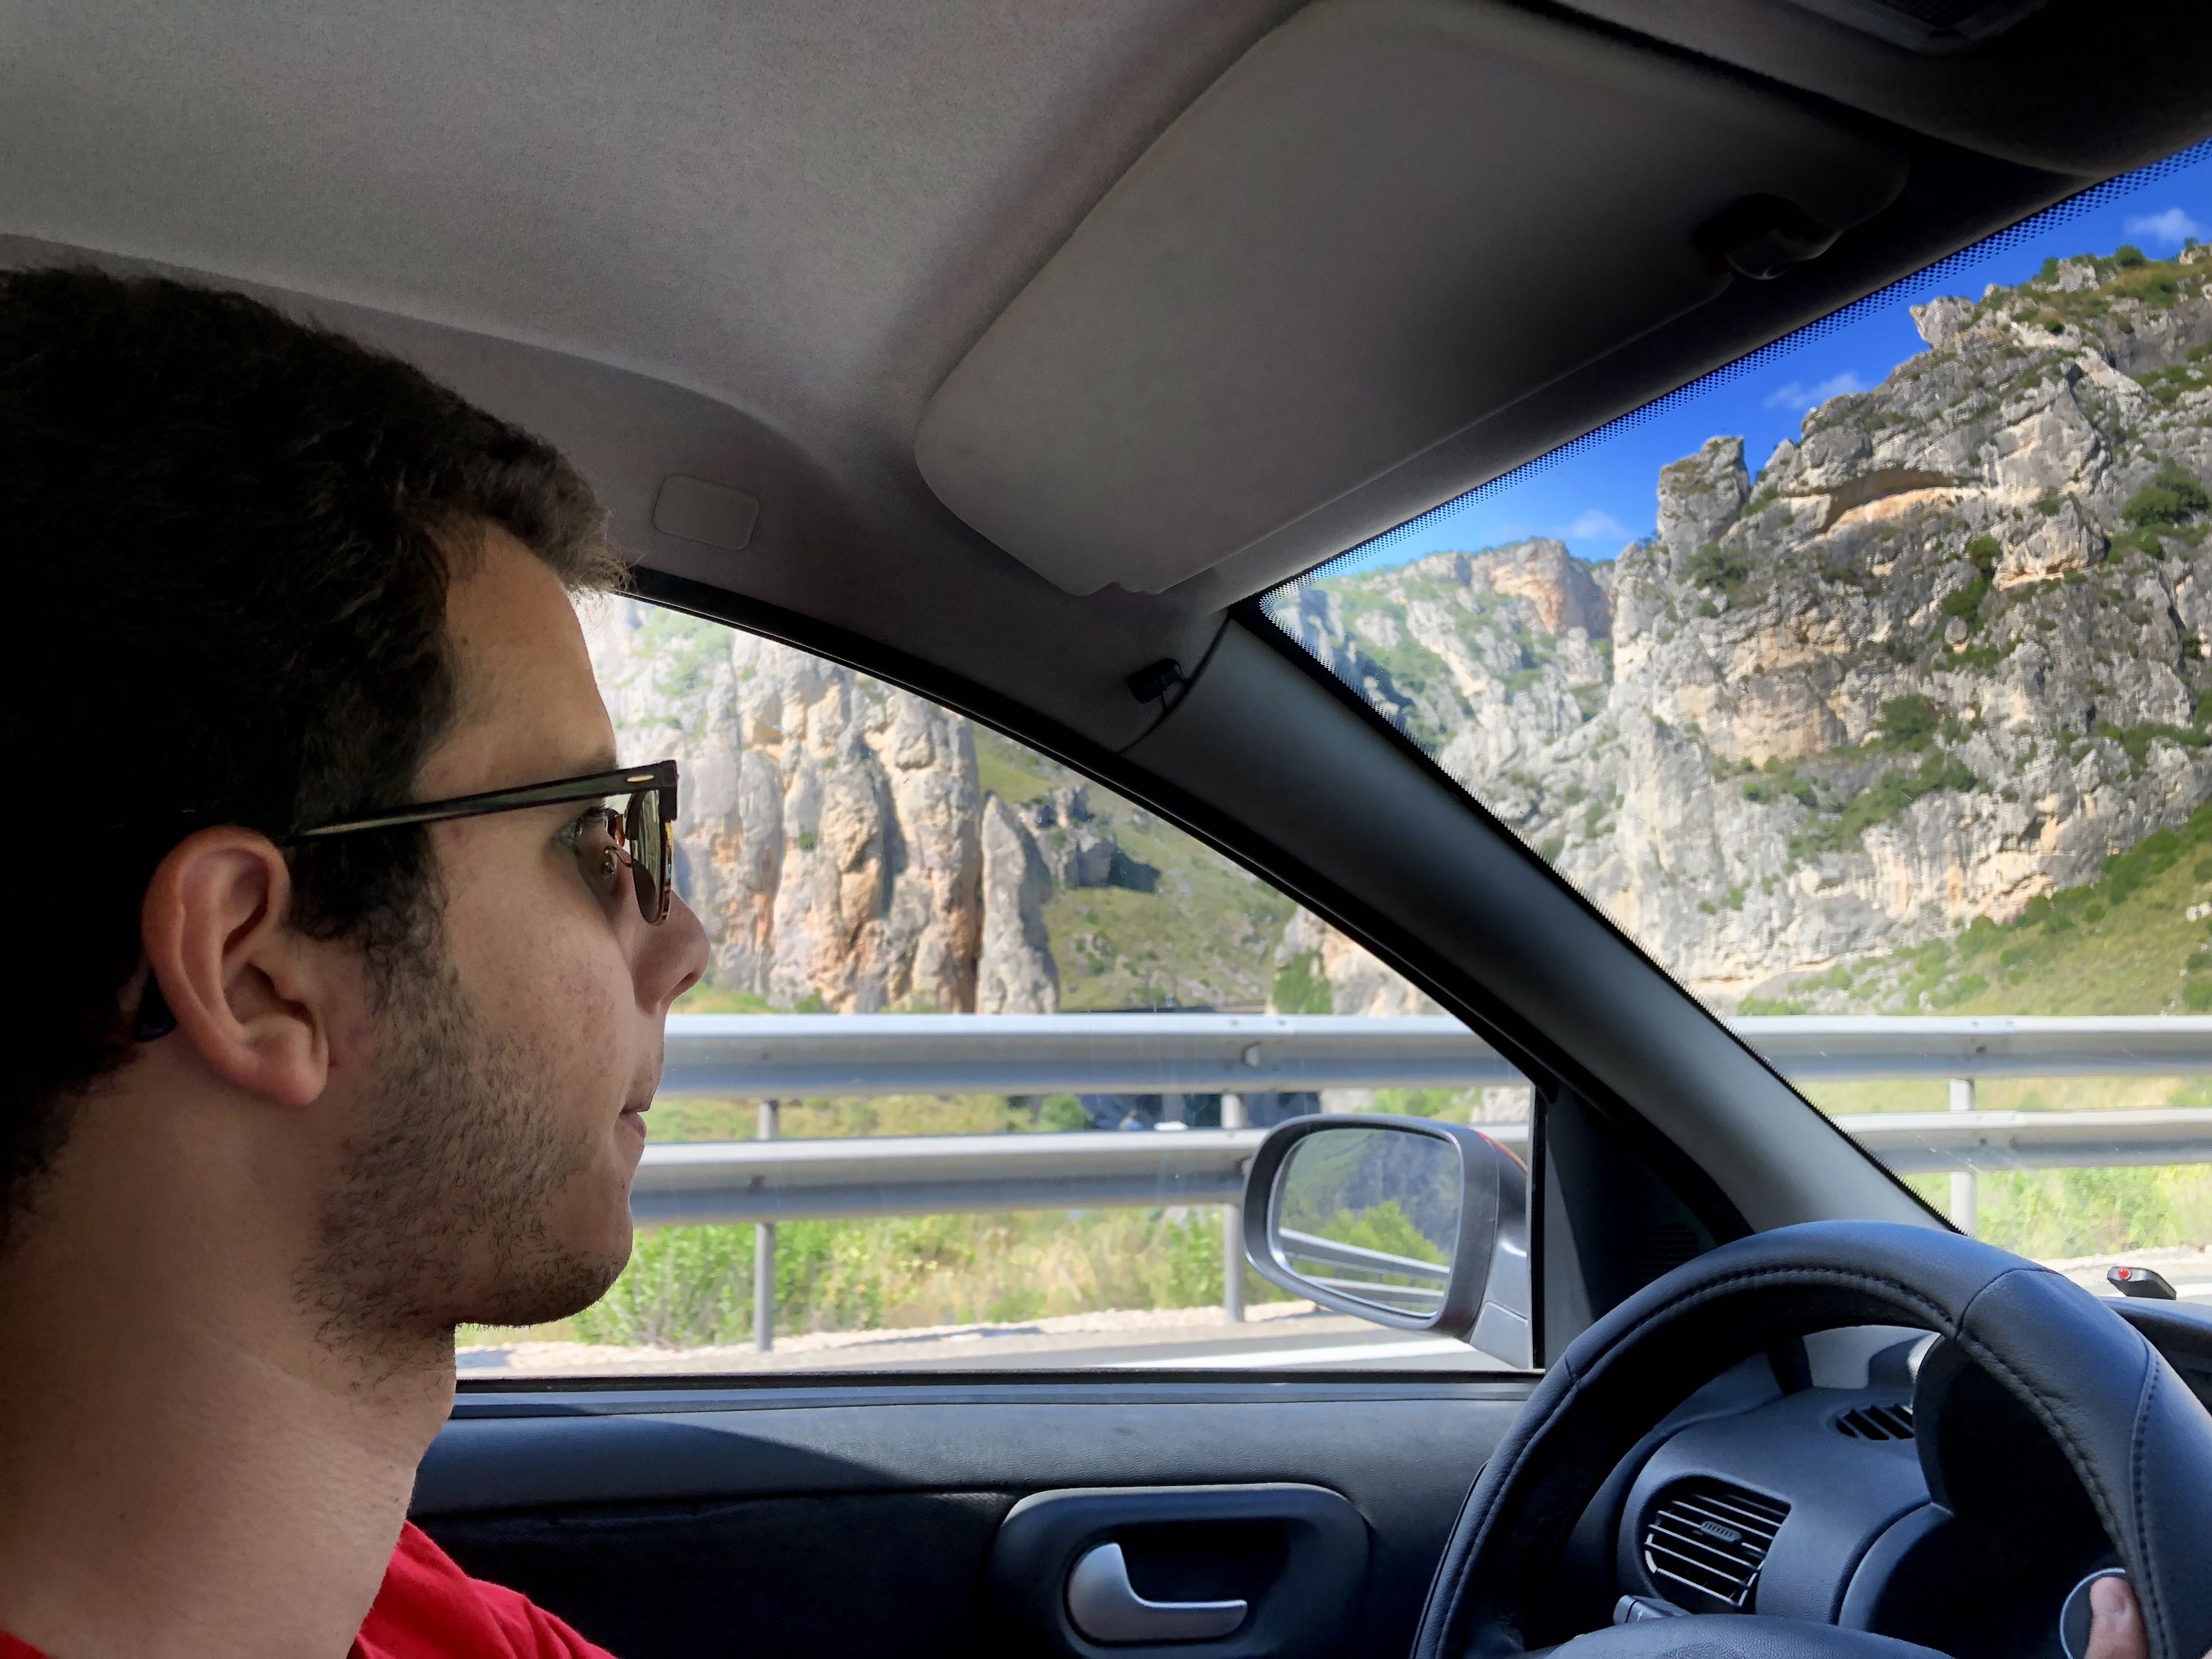 Luis, driving to Germany